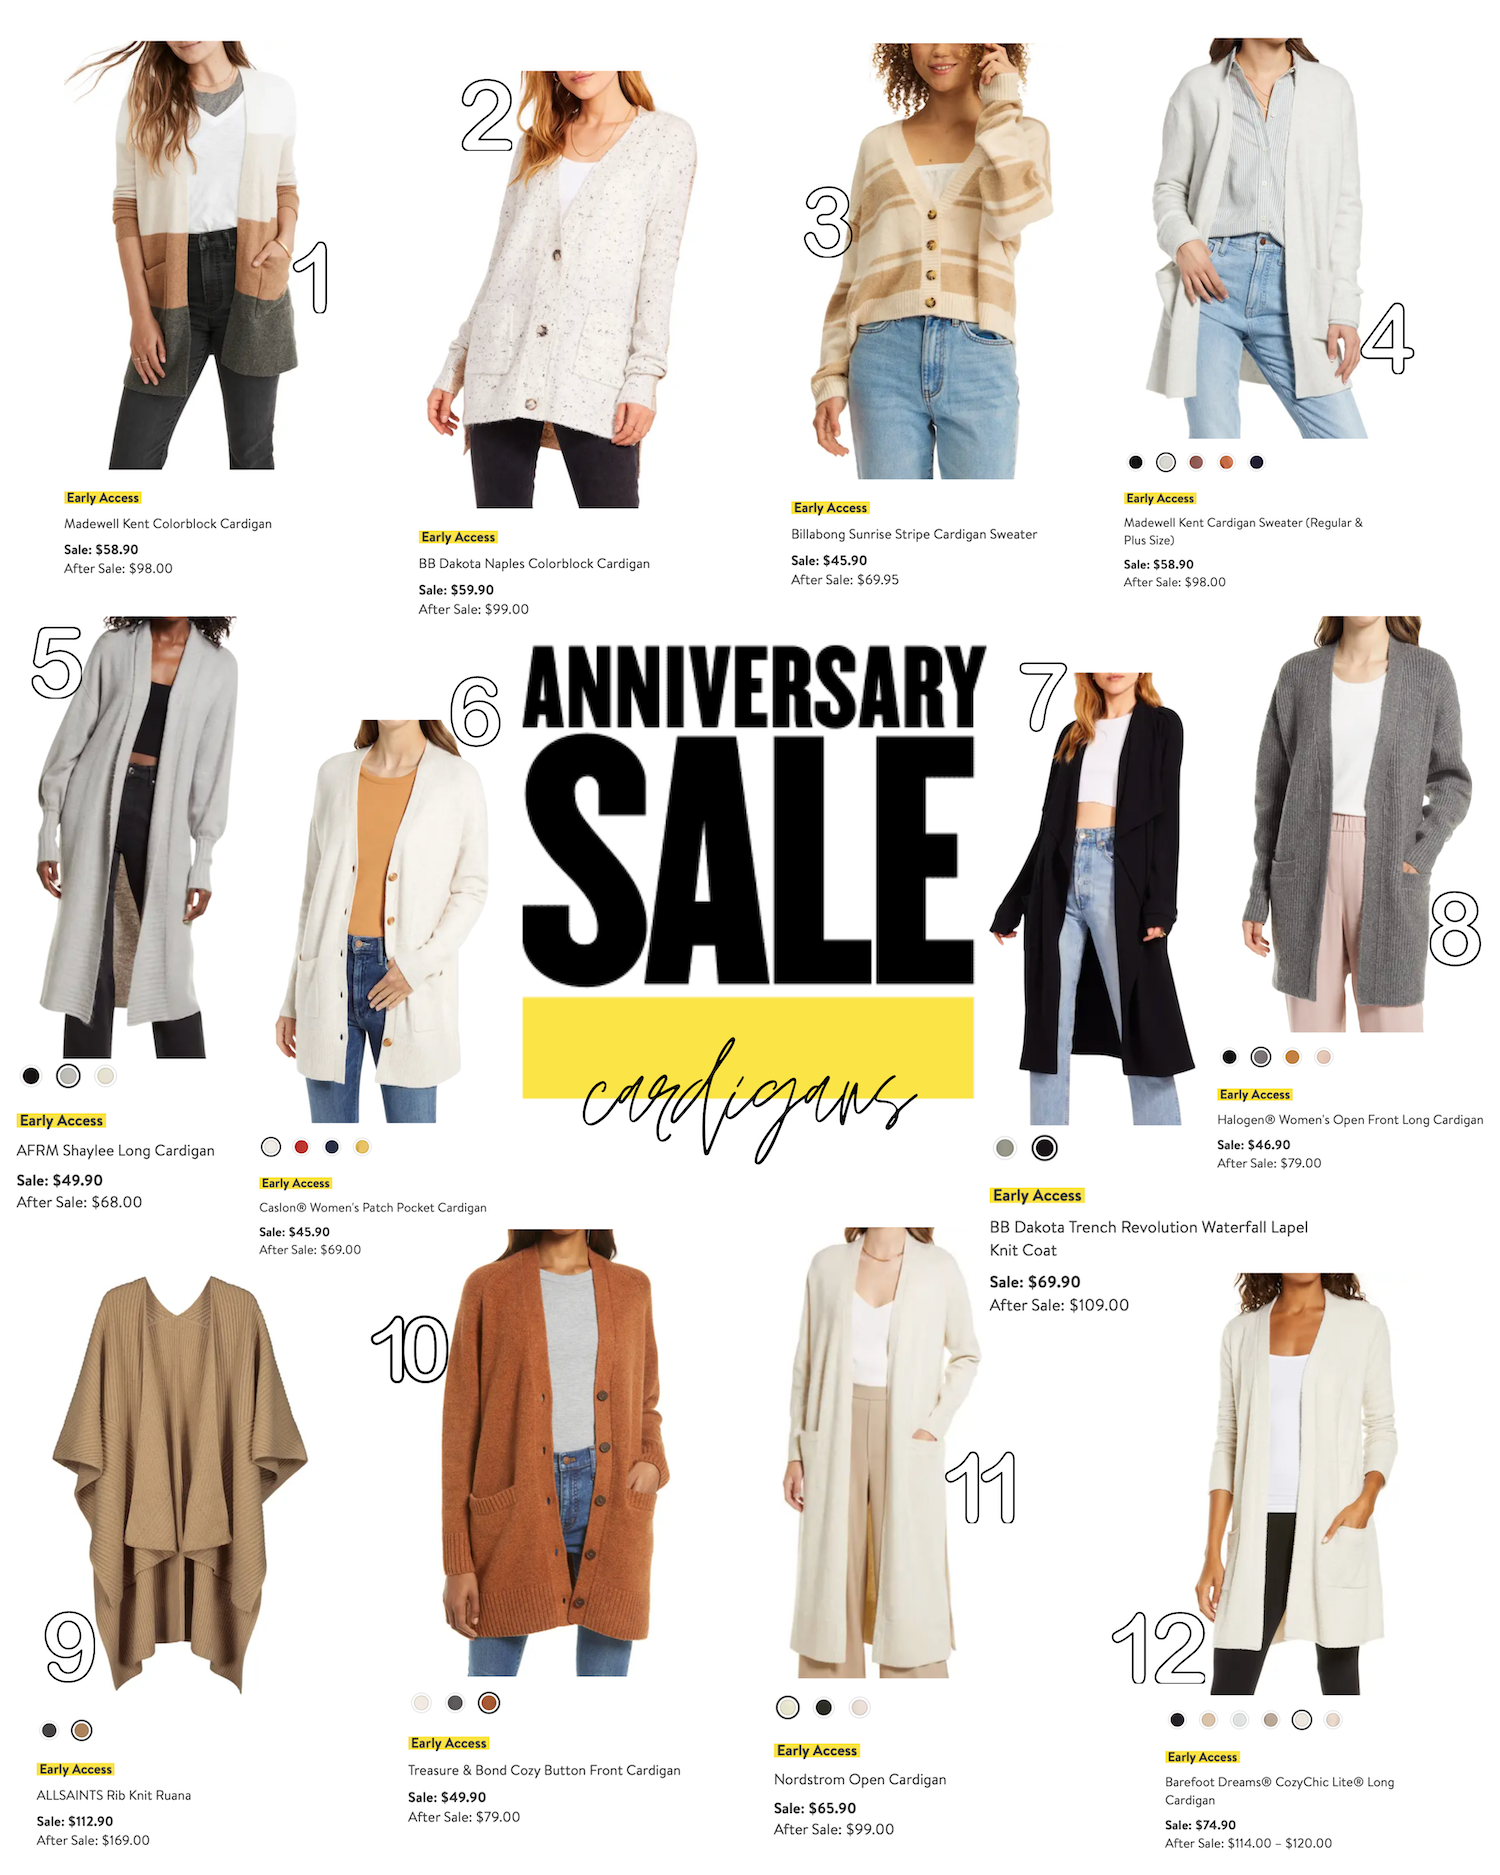 Nordstrom Sale 2021 Roundup The best Cardigans daily dose of charm nsale Lauren Emily Lindmark